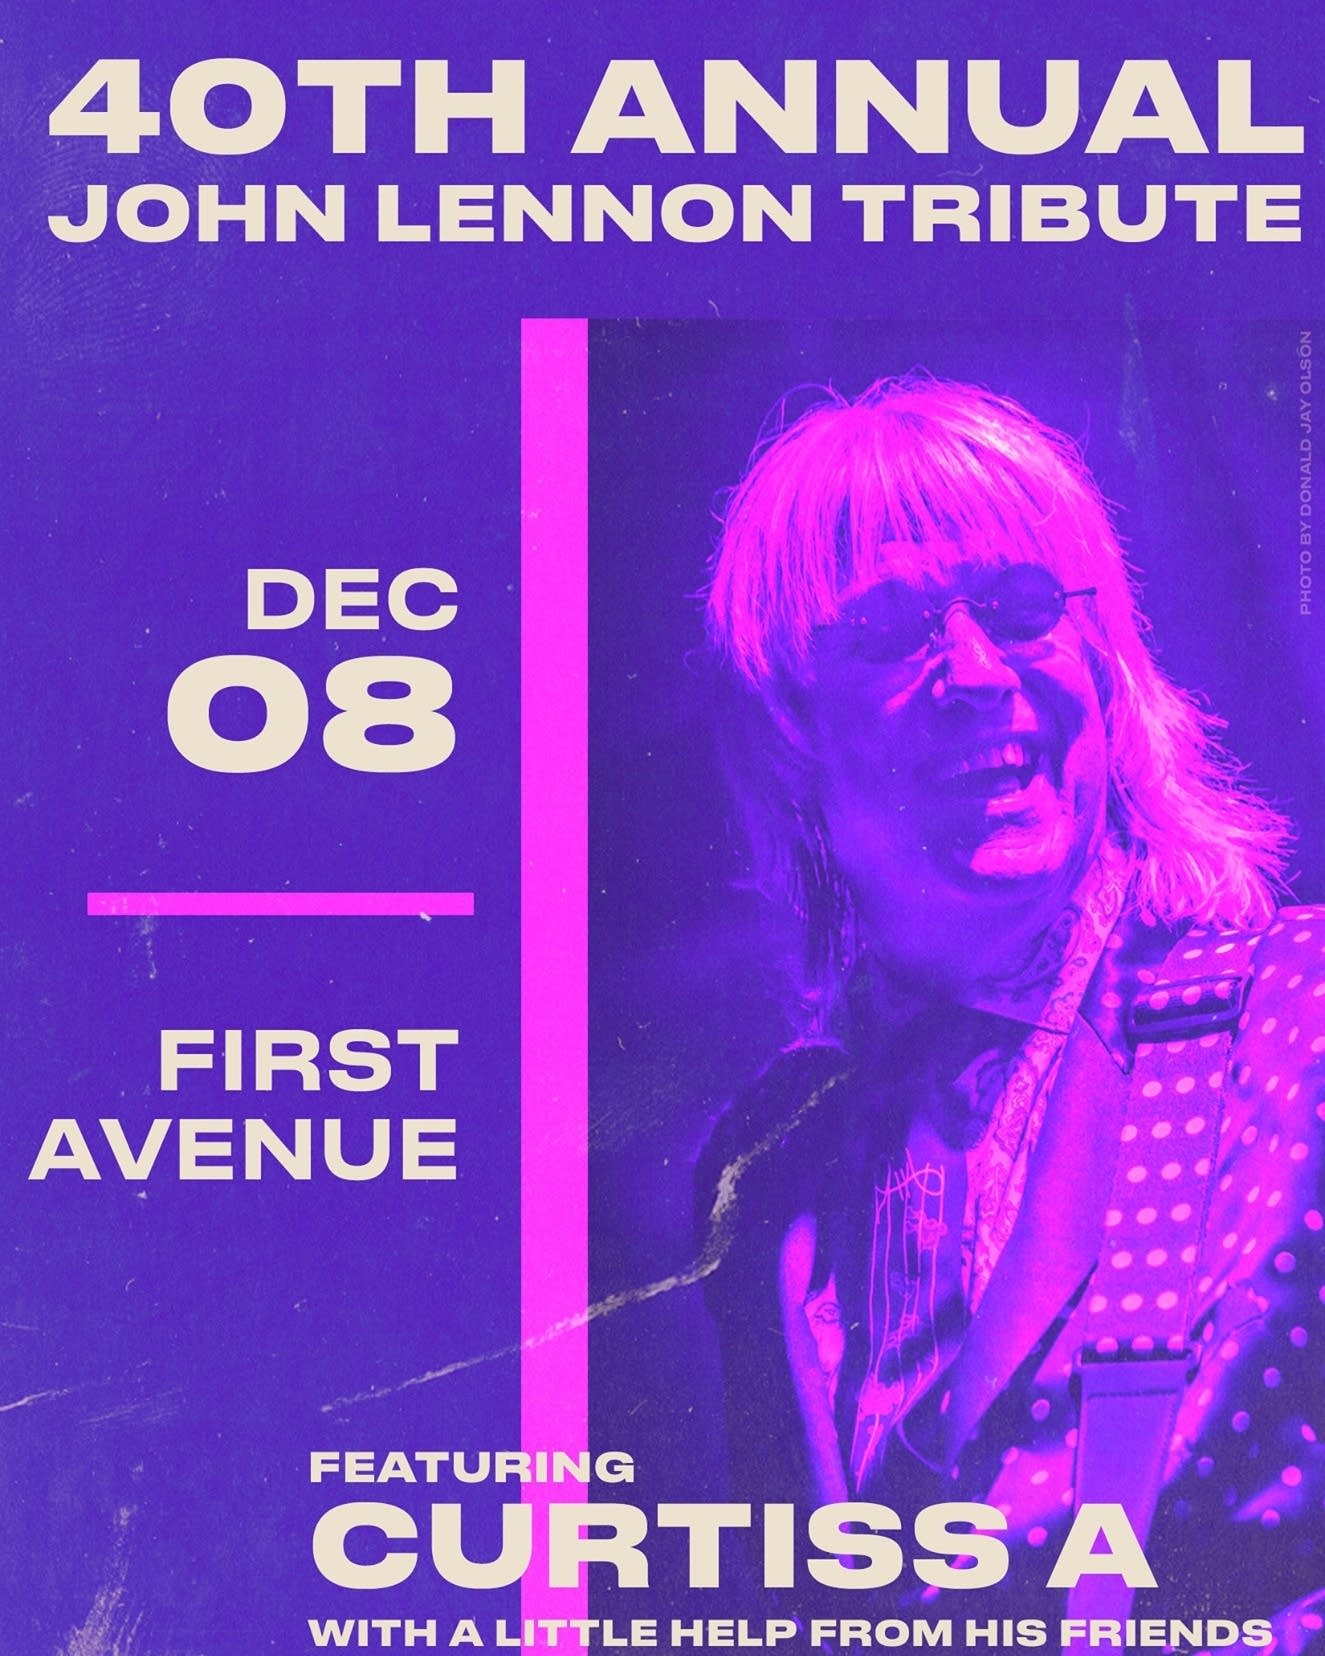 40th Annual Lennon Tribute